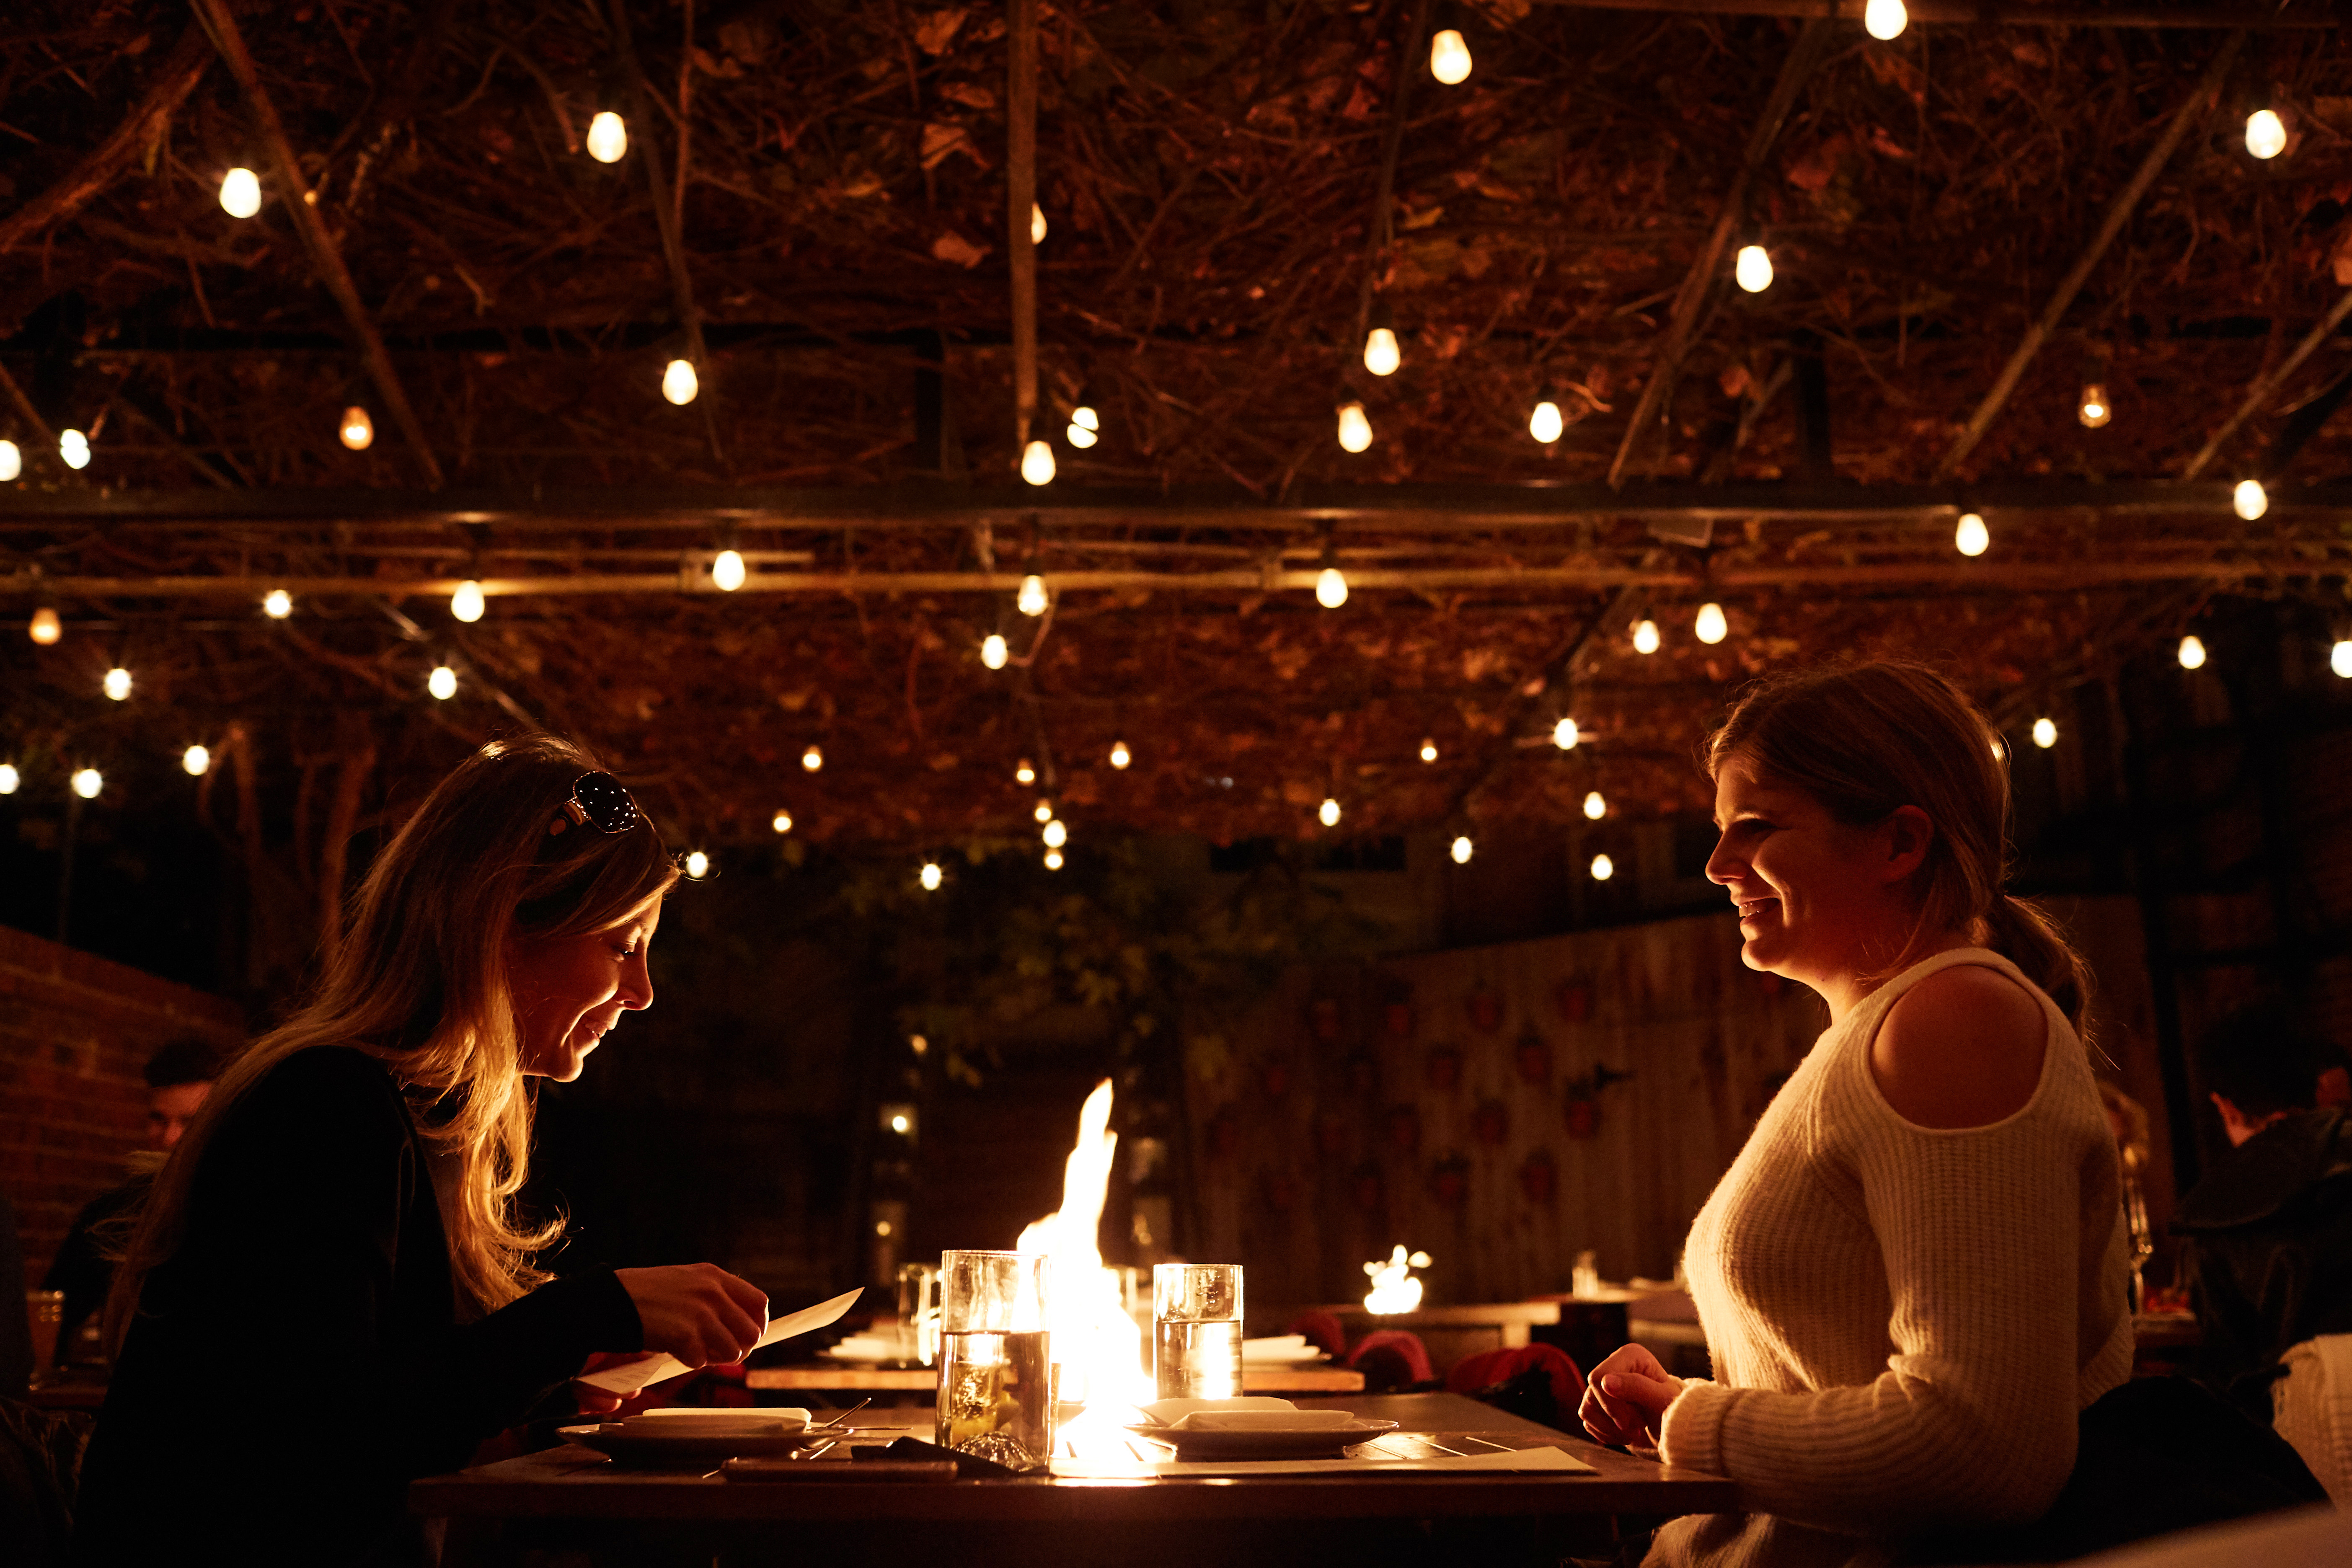 12 Places for a Quiet, Intimate Dinner Around D.C.